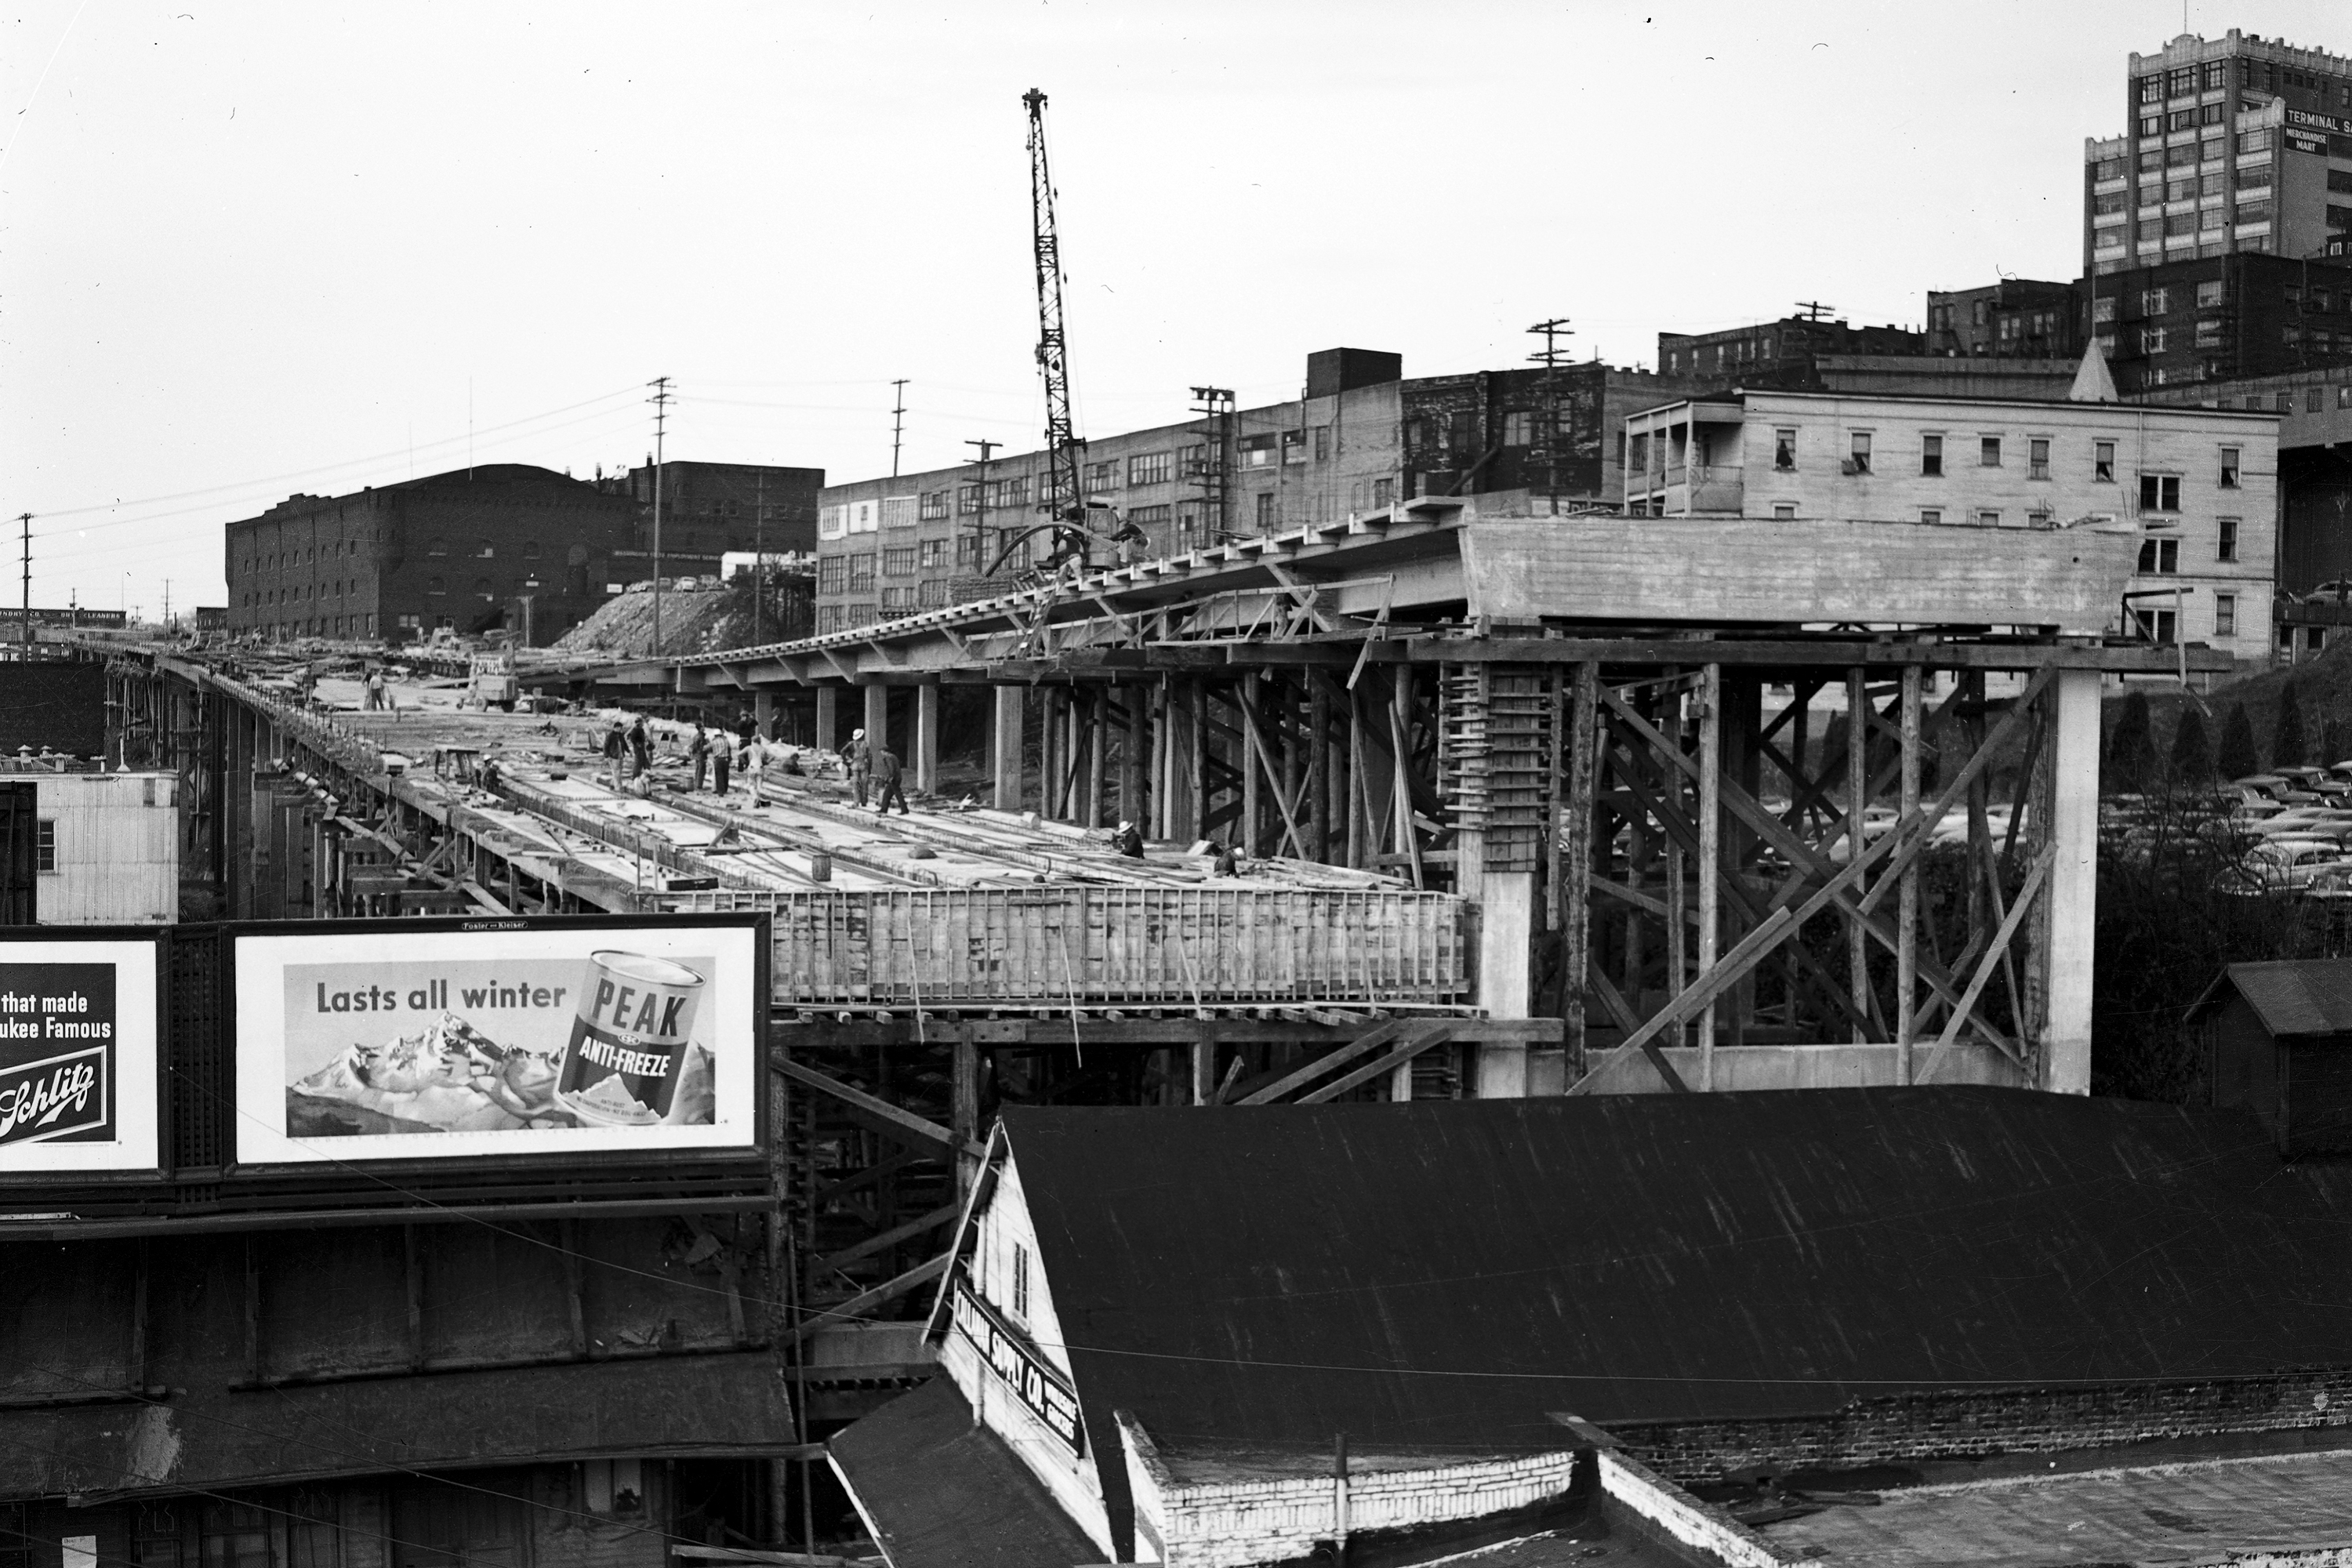 The Alaskan Way Viaduct and advertising billboards. This is a black and white photograph.